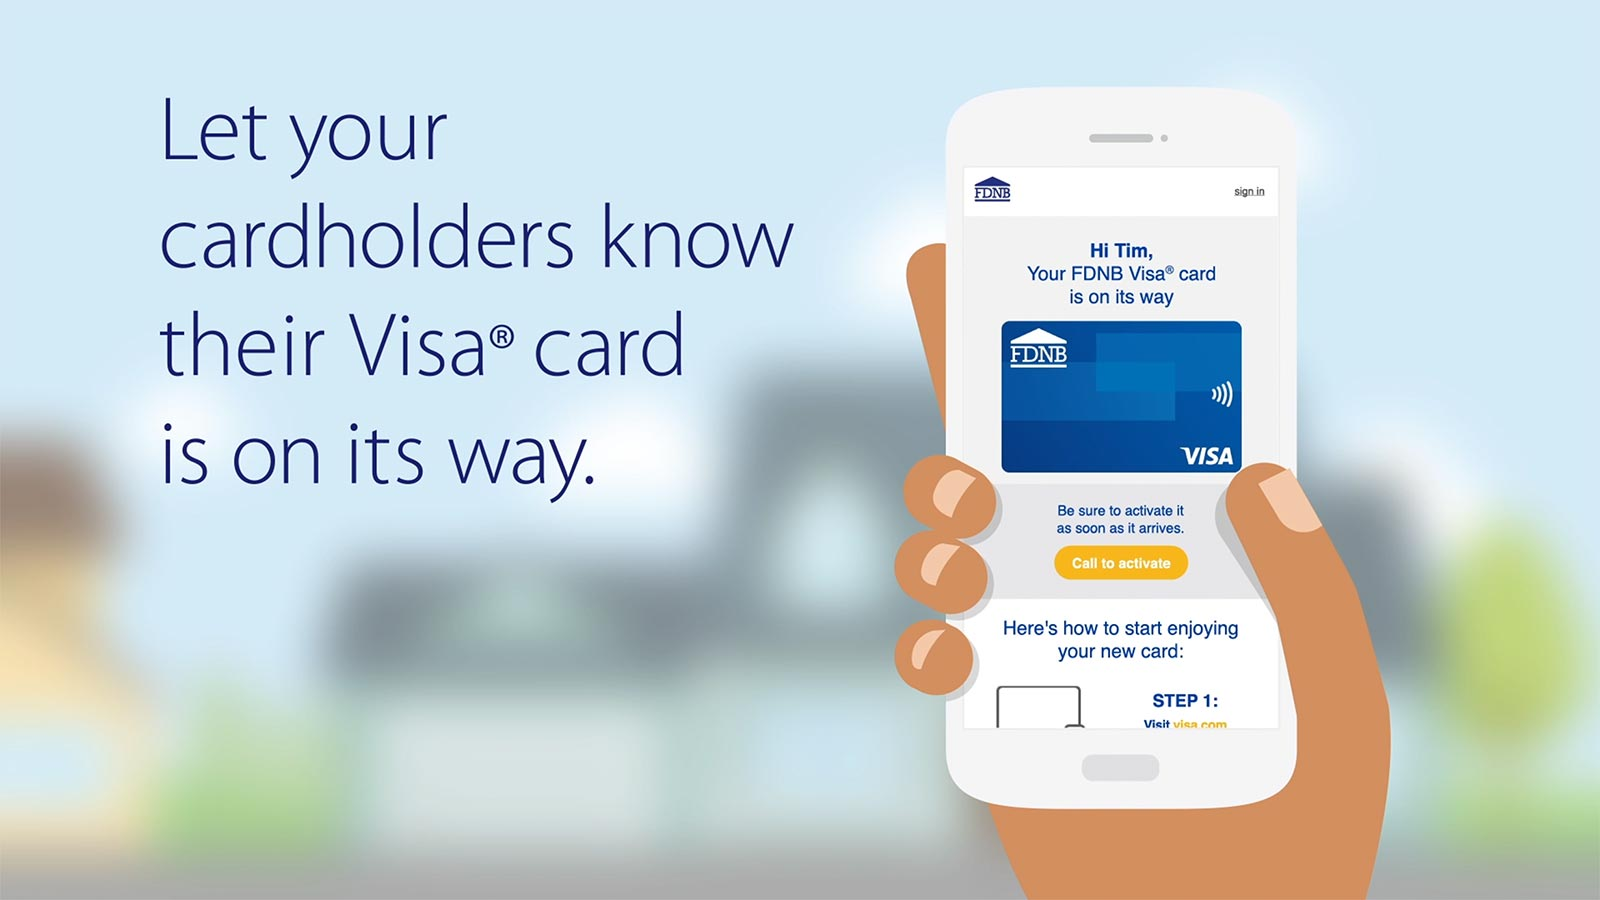 Text: Let your cardholders know their Visa card is on its way. Image: A mobile phone showing the credit card delivery notice.